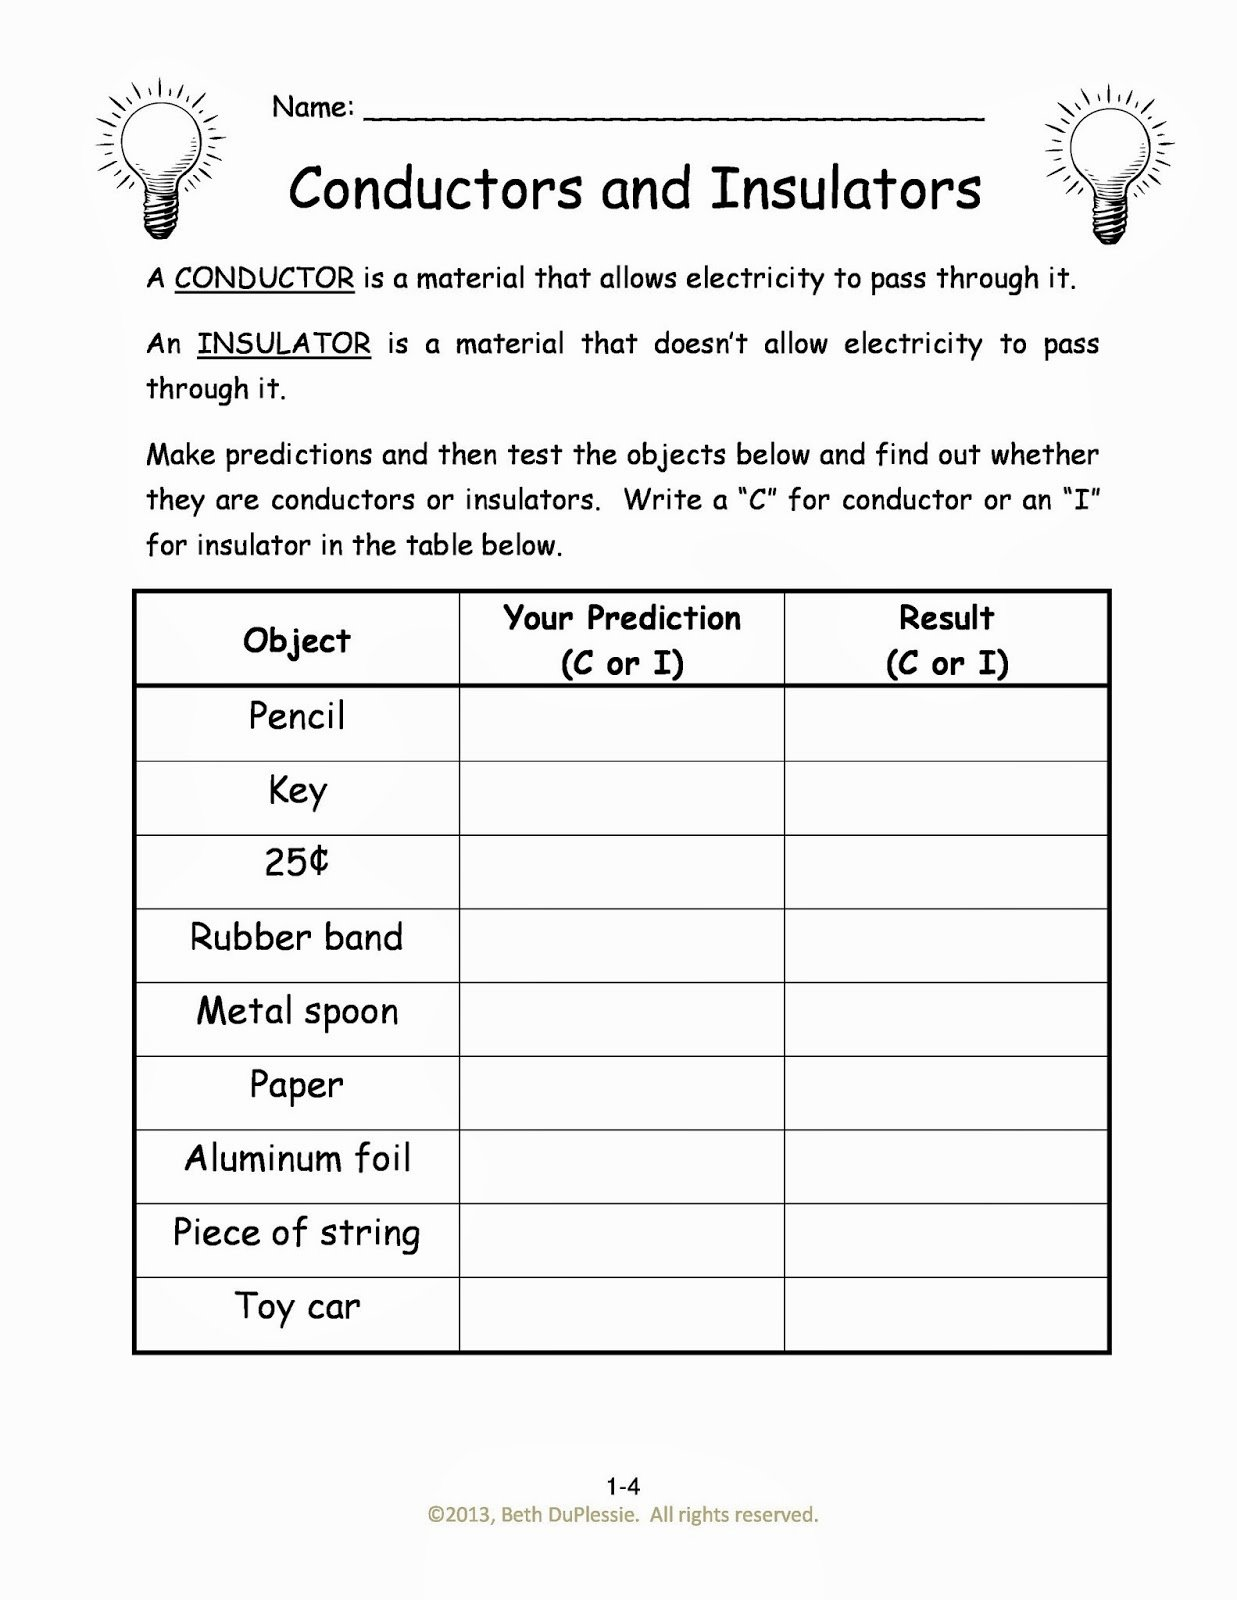 Conductors and Insulators Worksheet Luxury Homeschool Adventures In Engineering Week 5 Mechanical